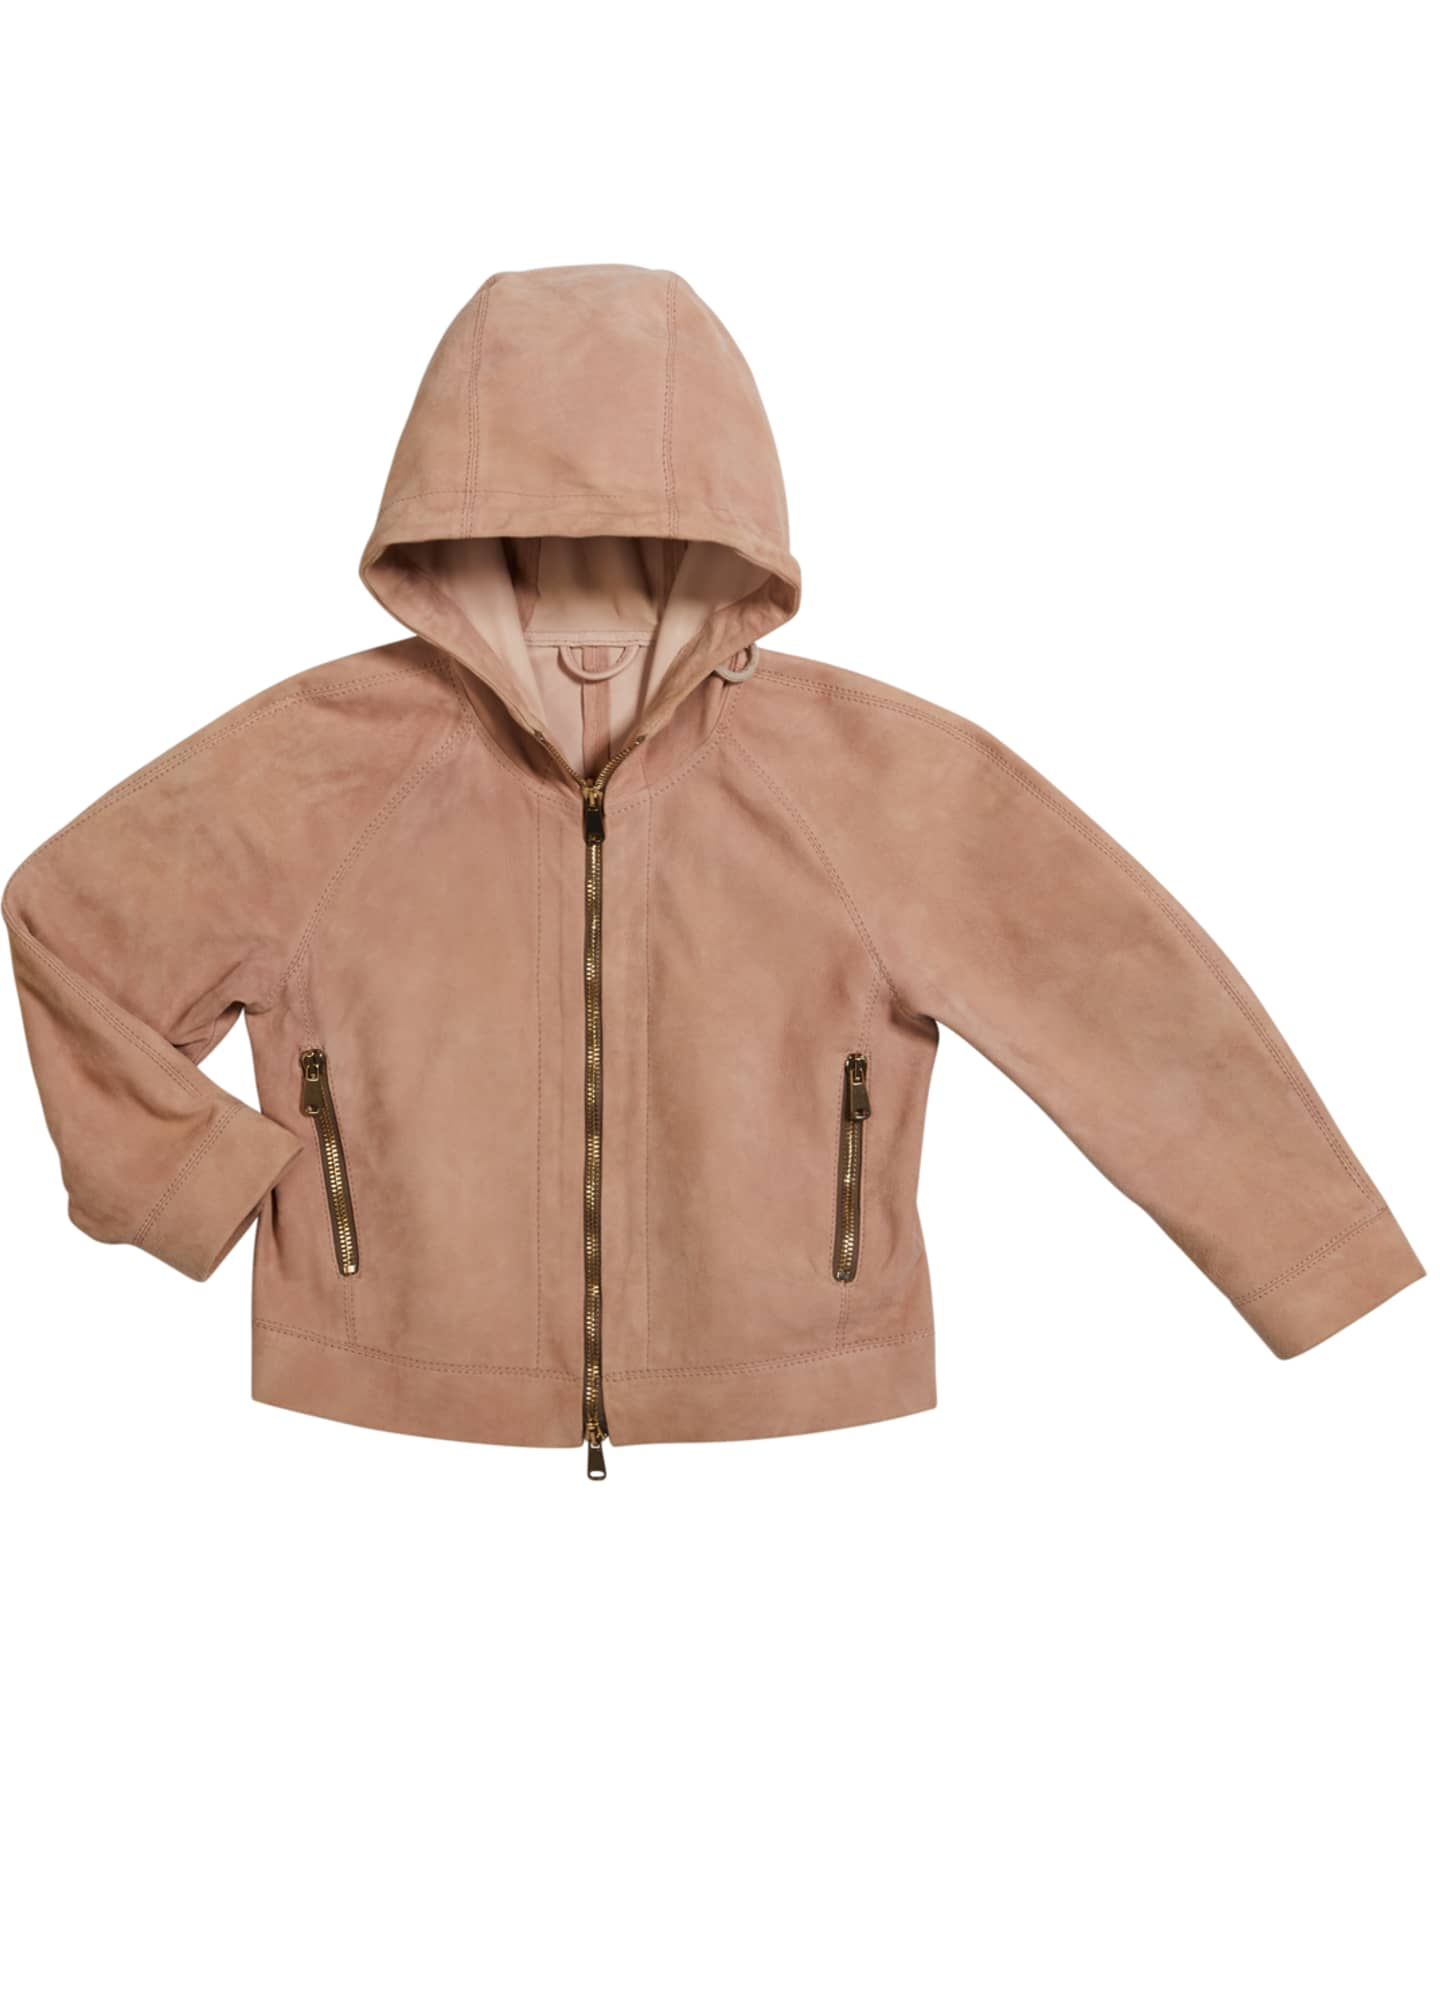 Image 1 of 1: Girl's Hooded Suede Jacket, Size 12-14